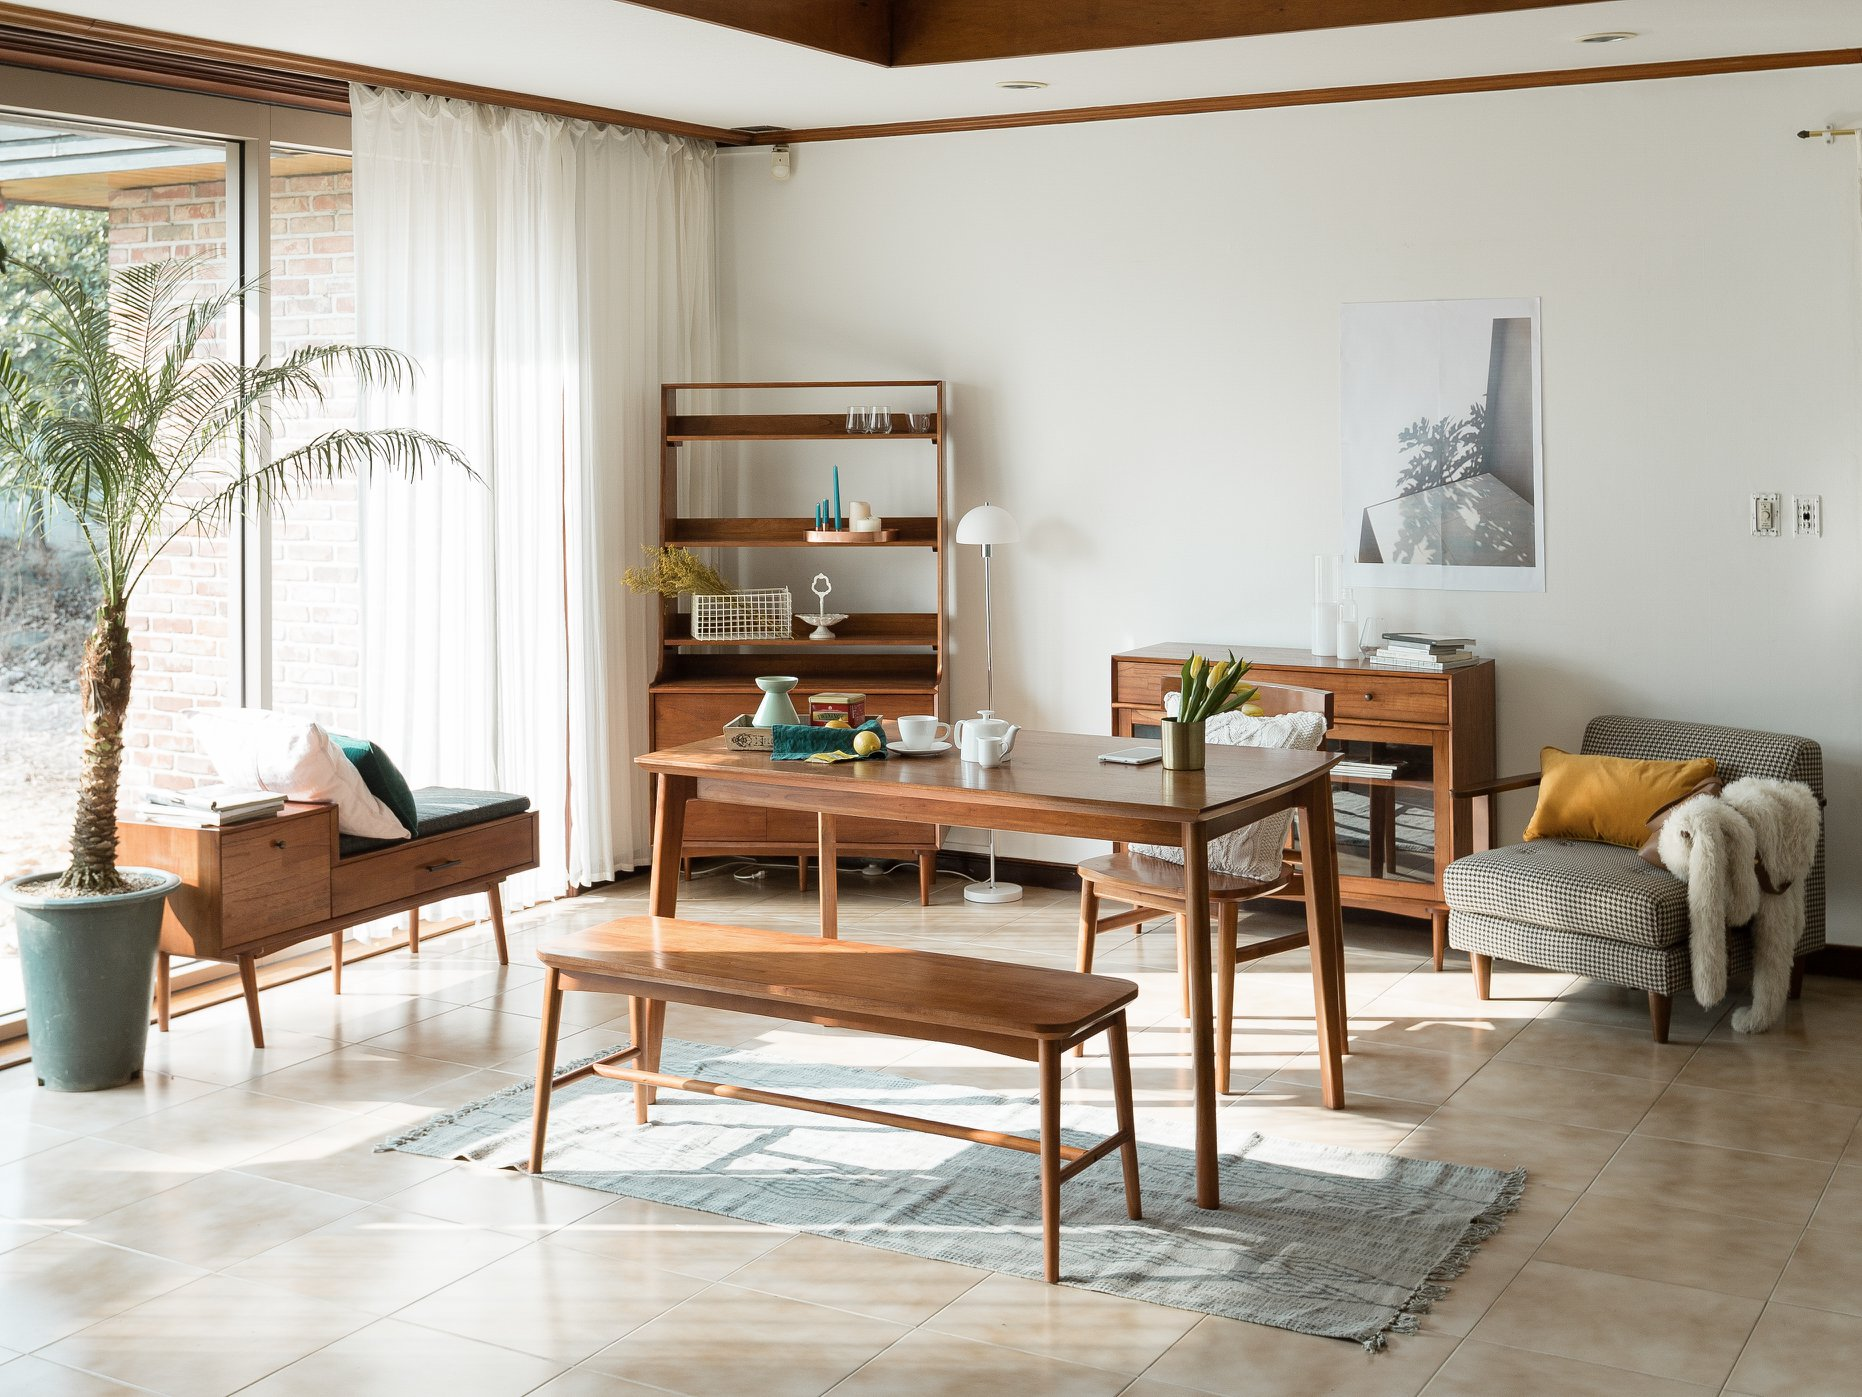 squarerooms-born-in-colour-wooden-furniture-living-dining-room